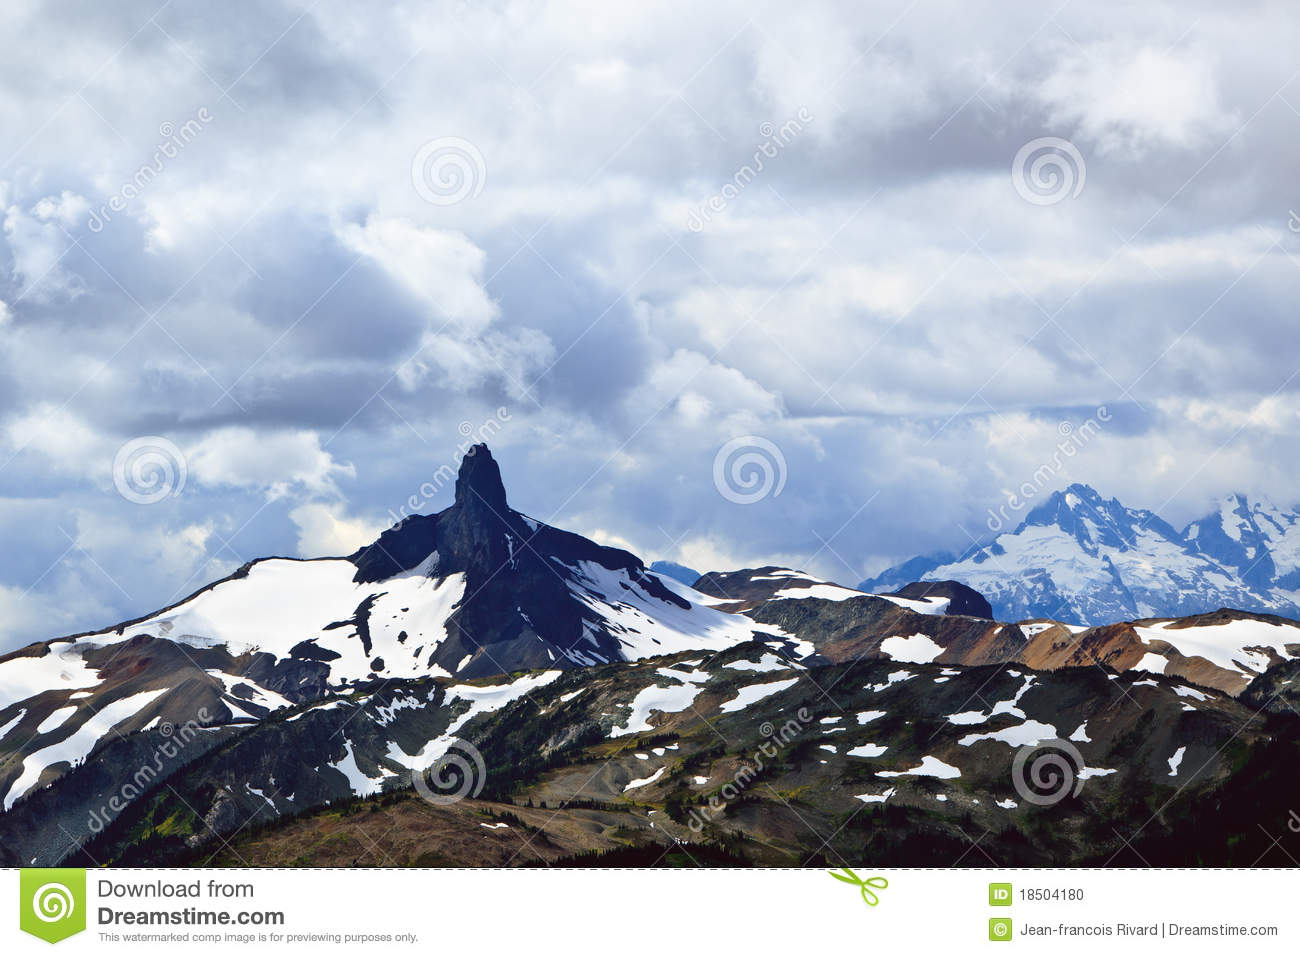 black tusk mountain - photo #22